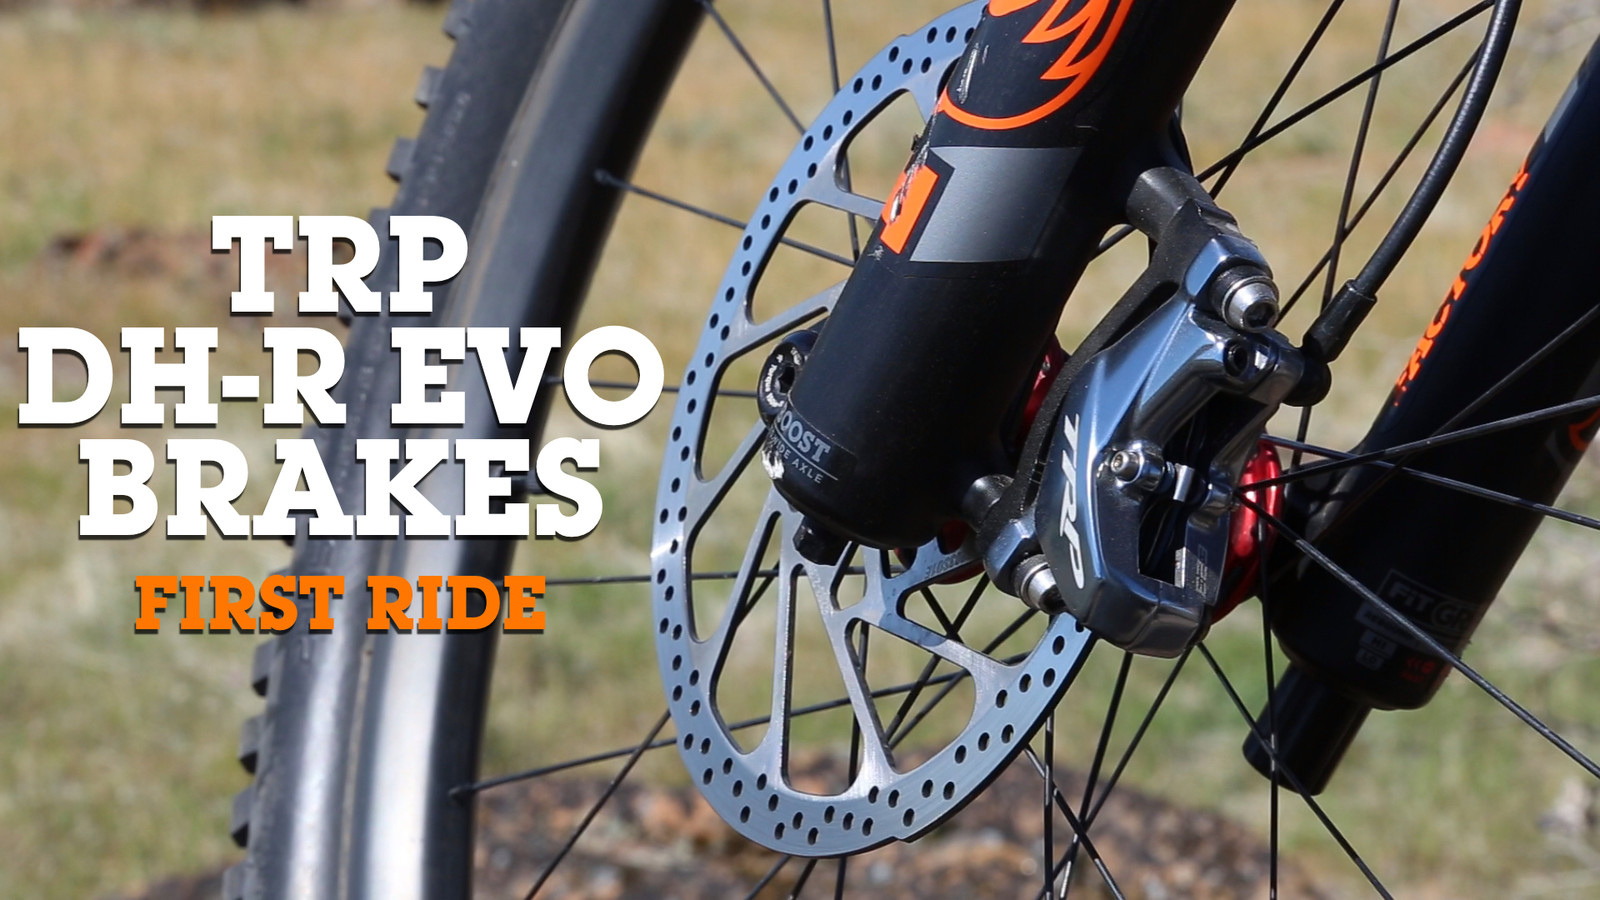 TRP Releases DH-R EVO Brakes - FIRST RIDE